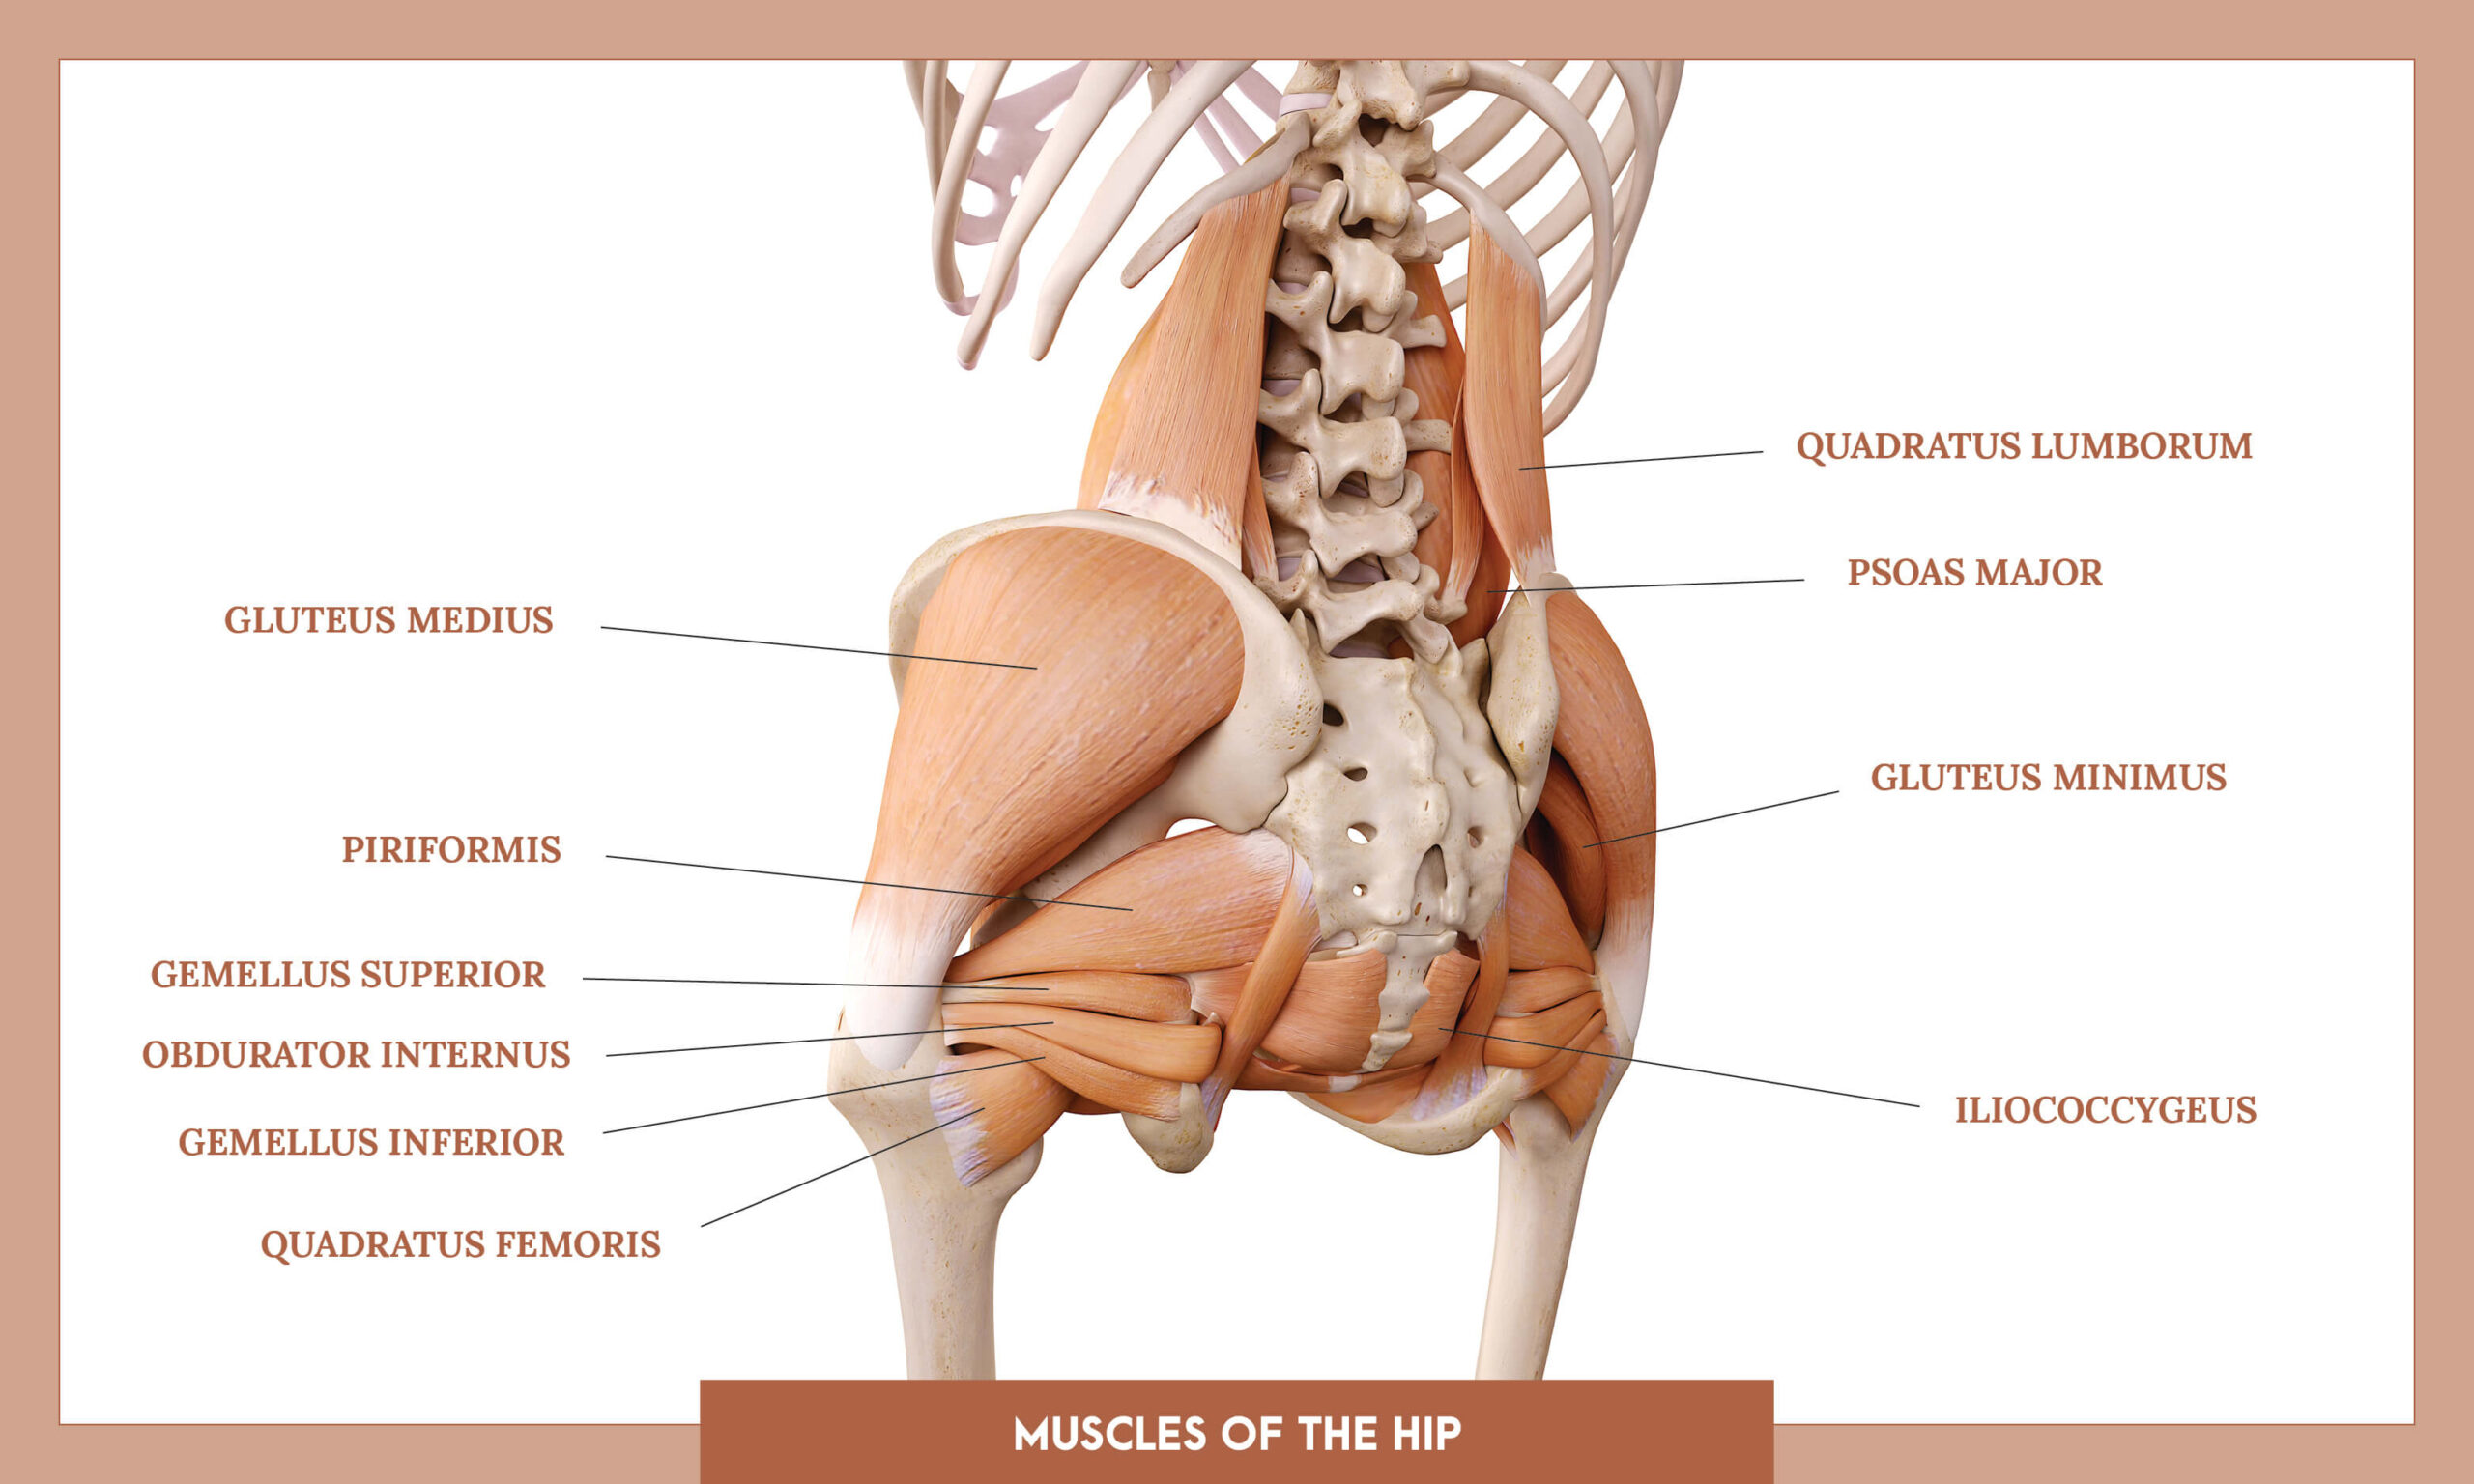 Muscles of thee Lower Limb - Muscles of the hip overview